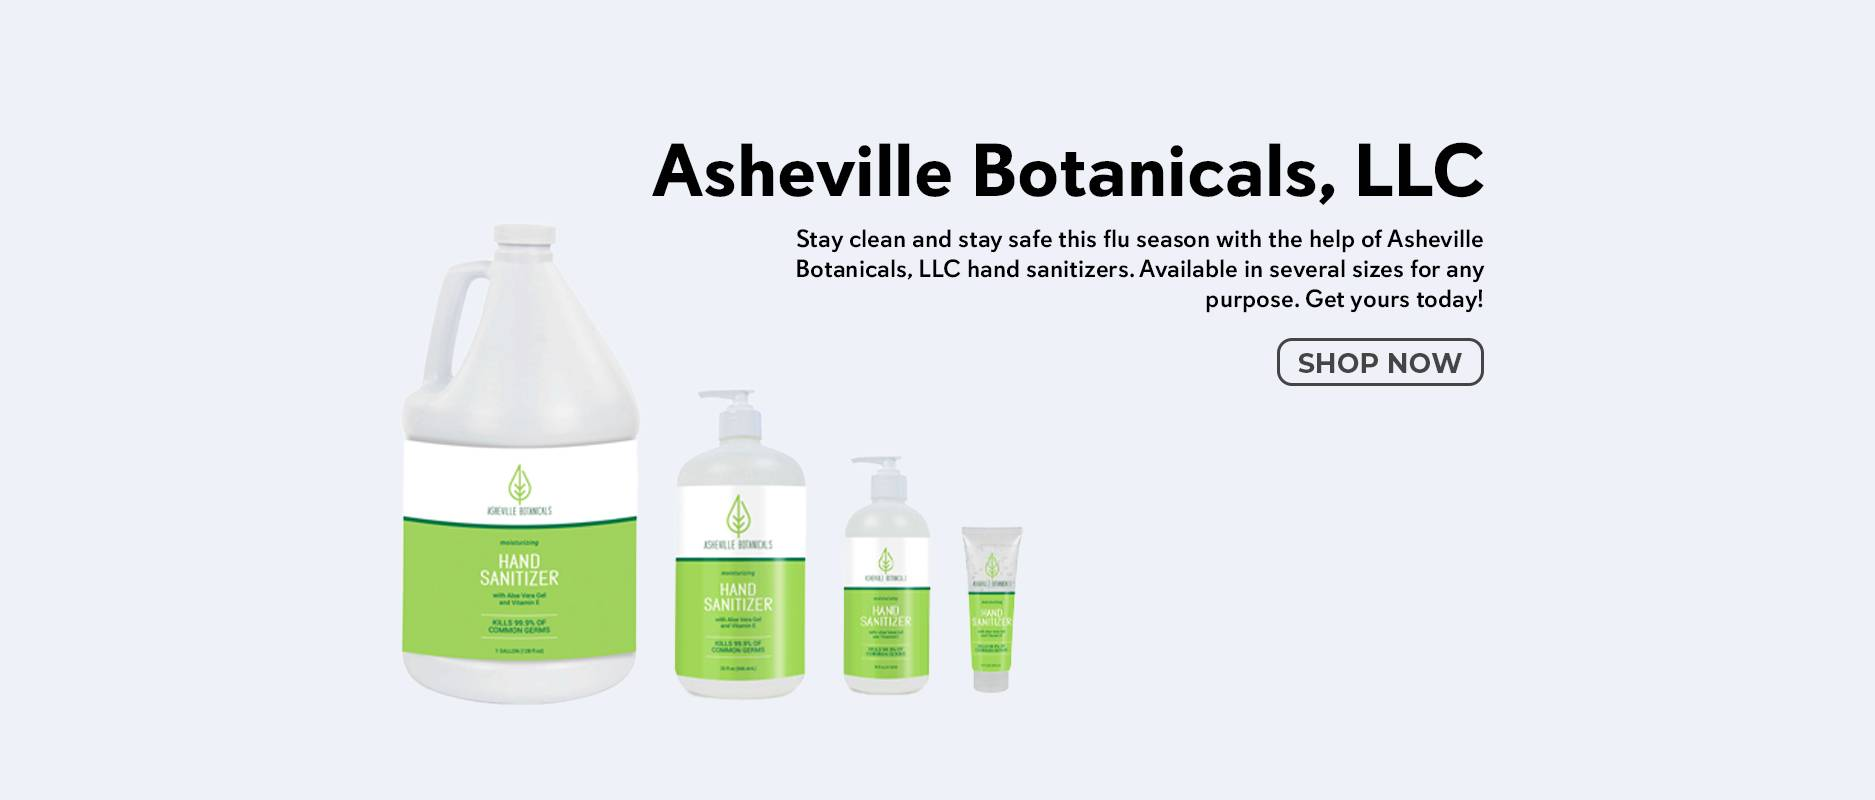 Shop Asheville Botanicals, LLC on Zoombots.com